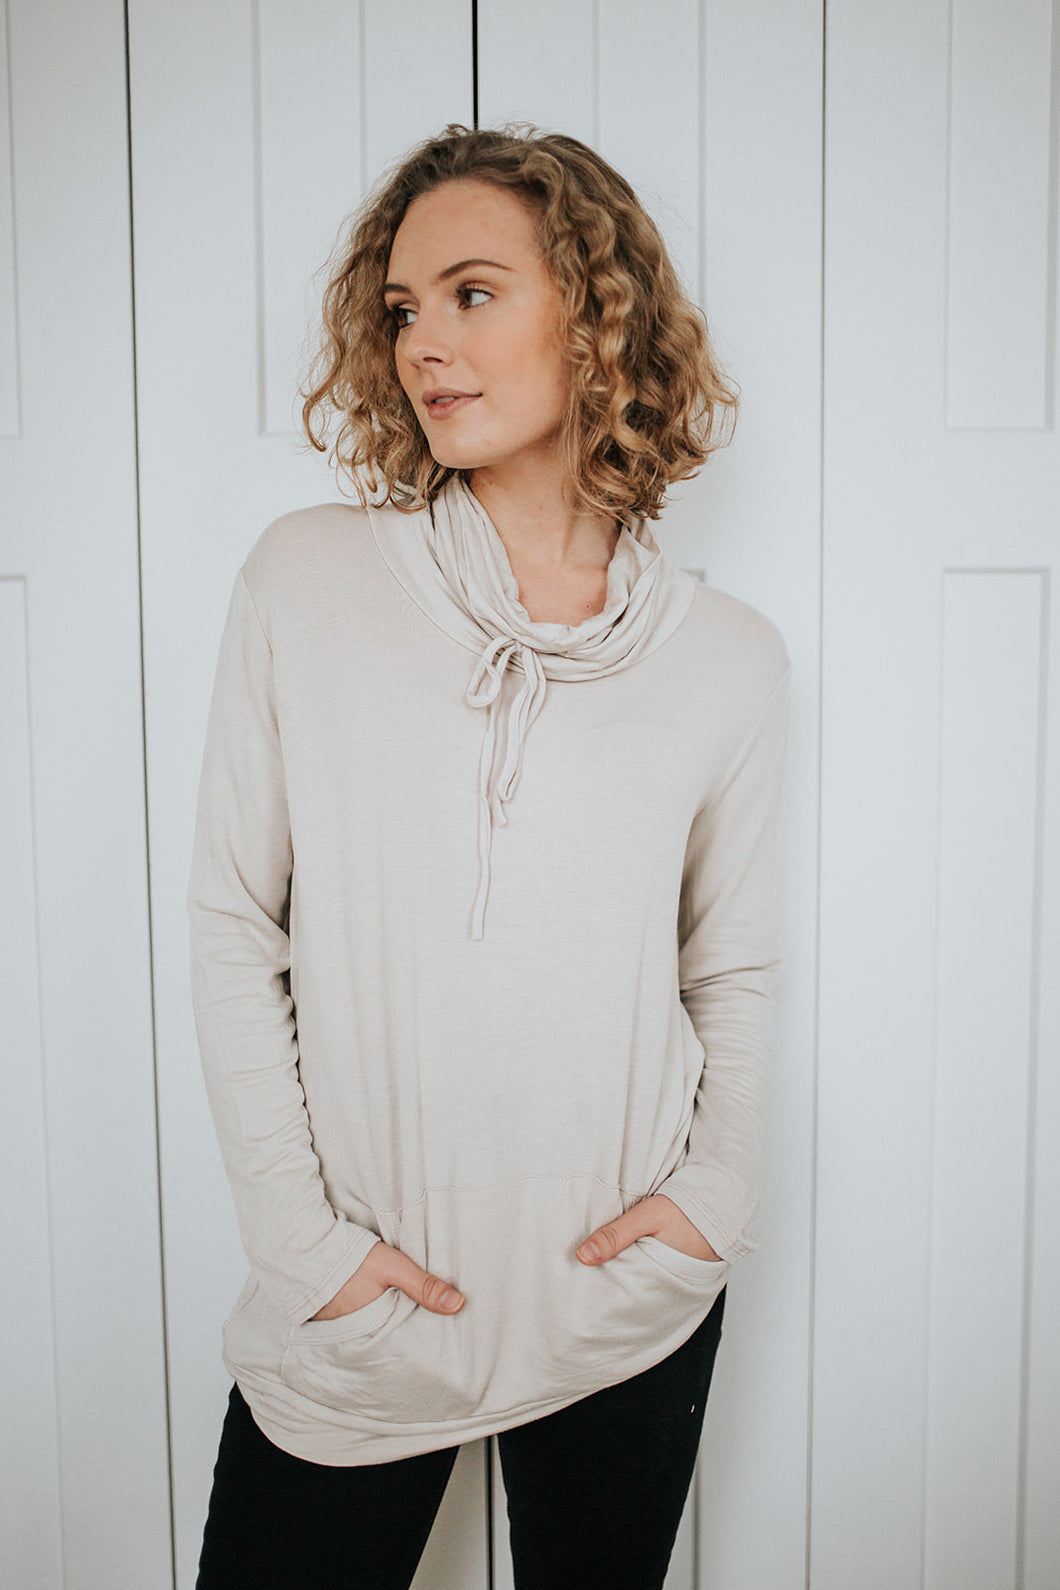 Our Everyday Cowled Neck Top in Oatmeal